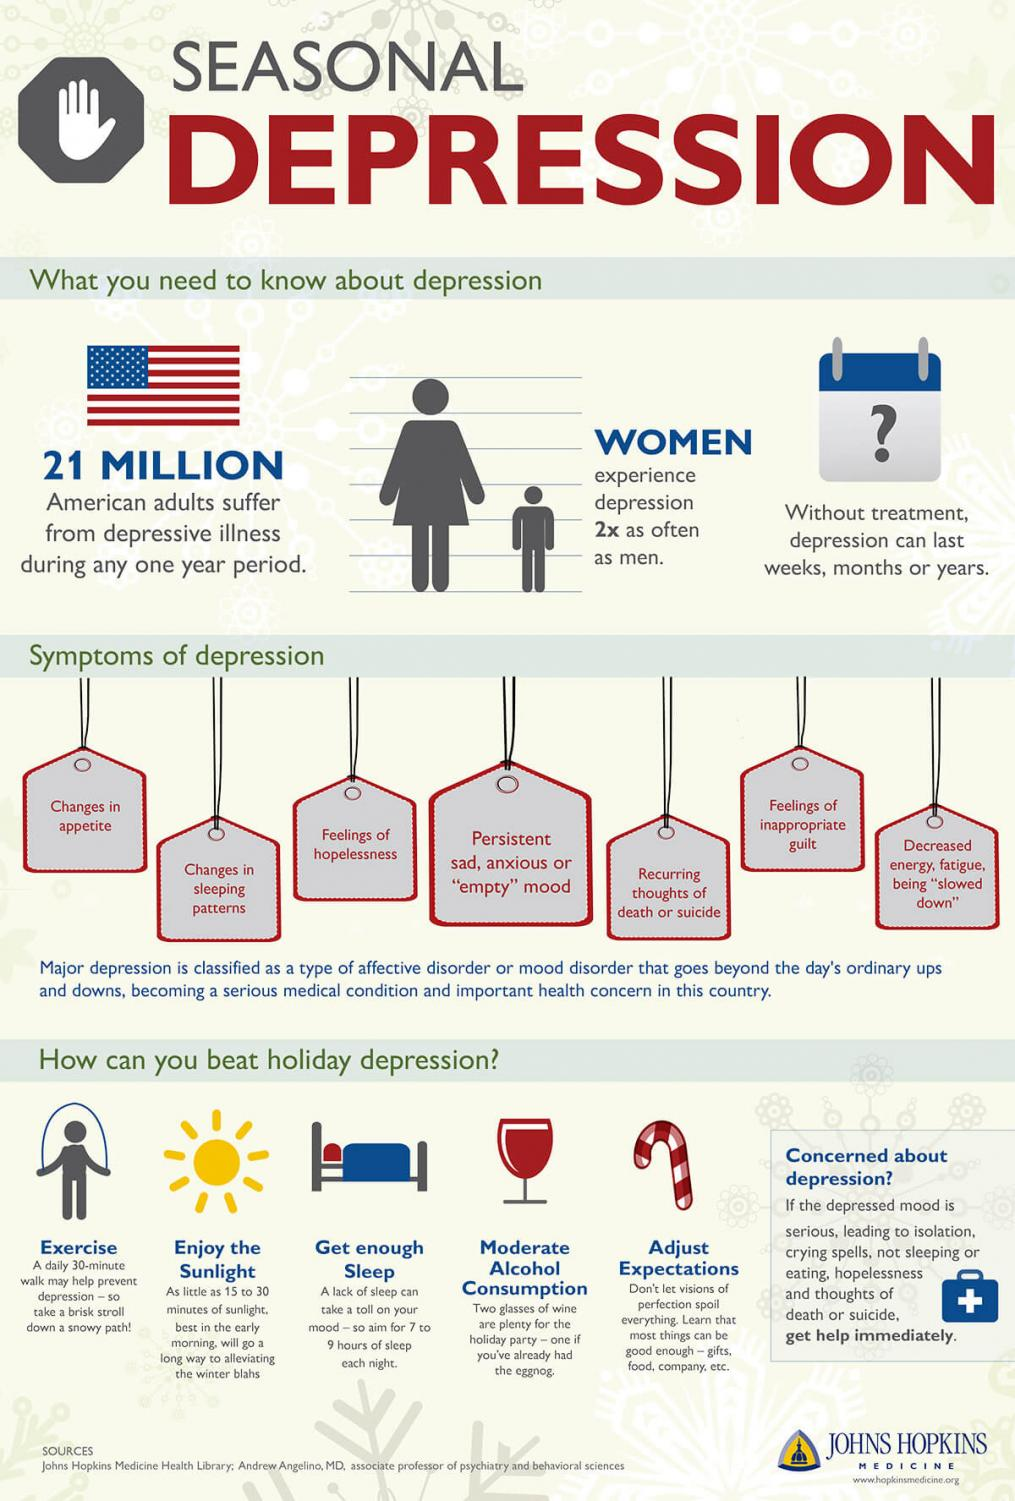 An infographic about the statistics and symptoms of seasonal affective disorder (SAD). Photo courtesy of Johns Hopkins Medicine.